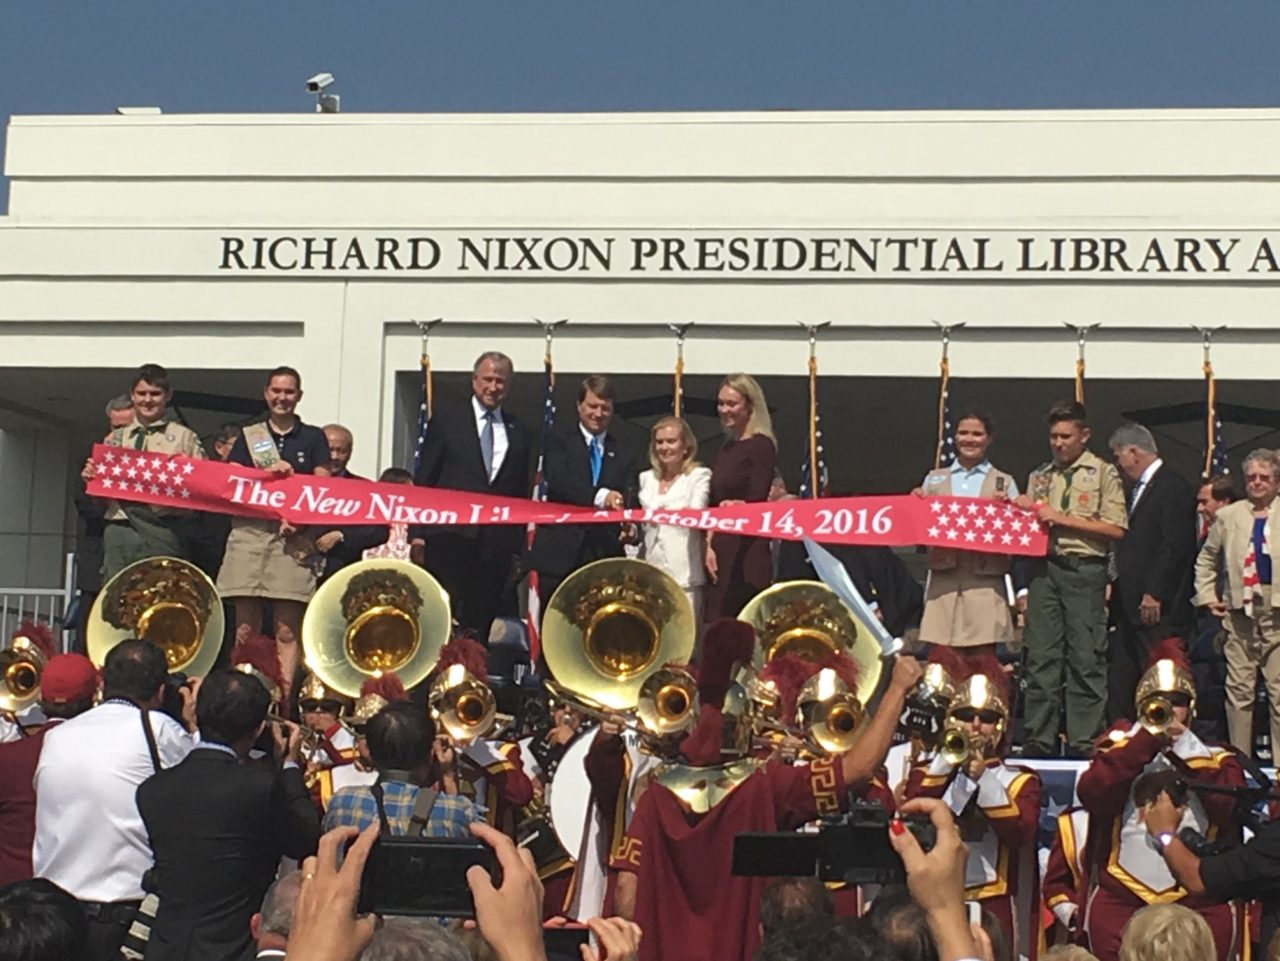 Nixon library re-opening (Adelle Nazarian / Breitbart News)